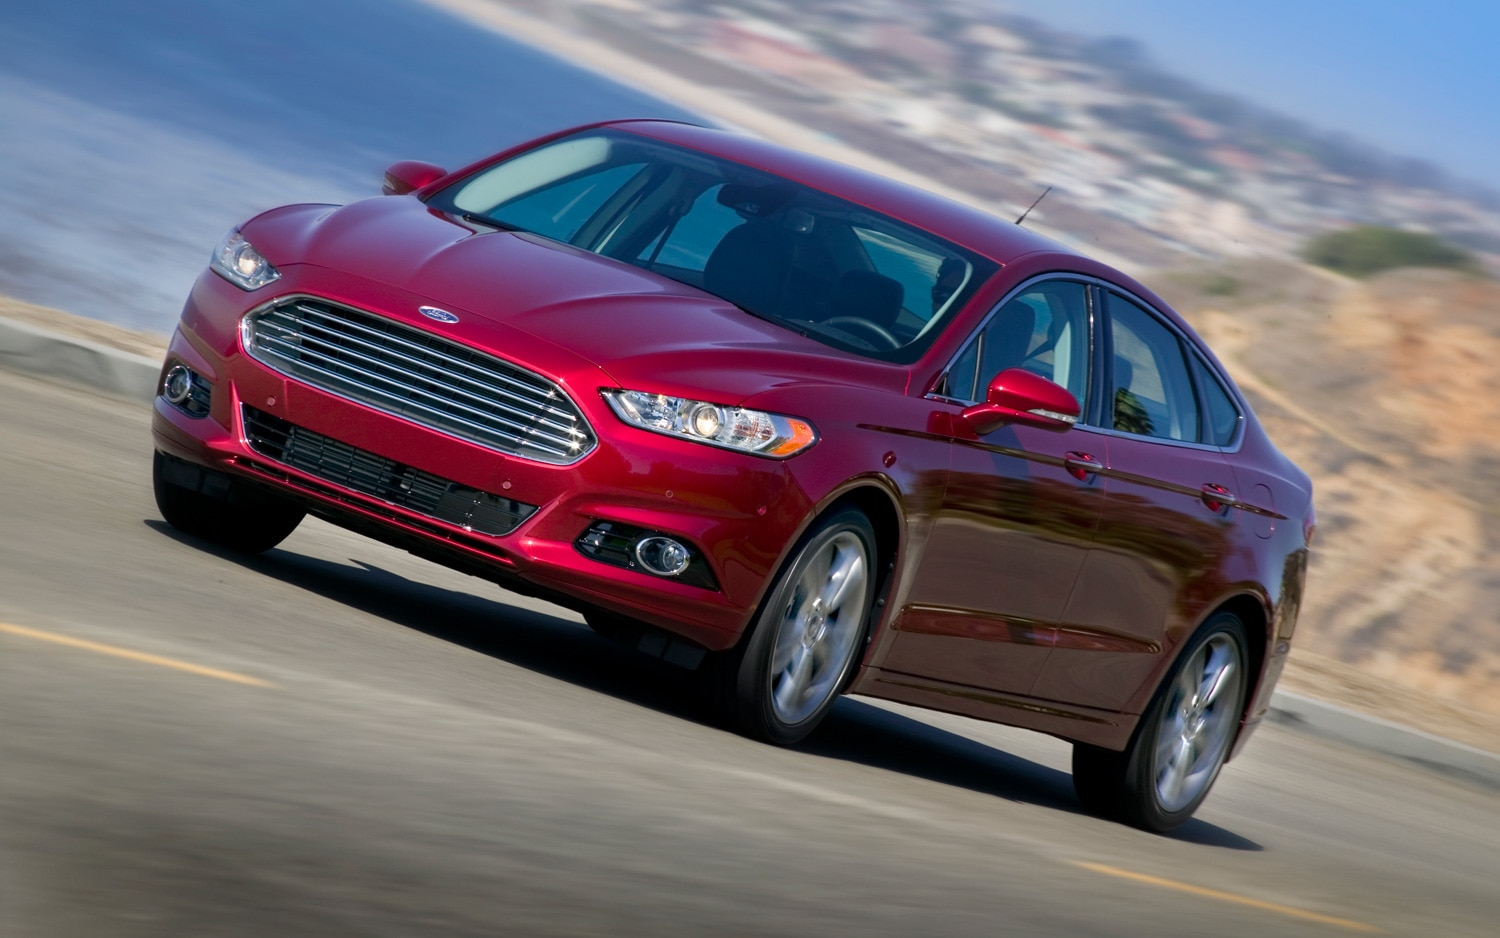 2013 Ford Fusion Titanium Front Three Quarters View In Motion